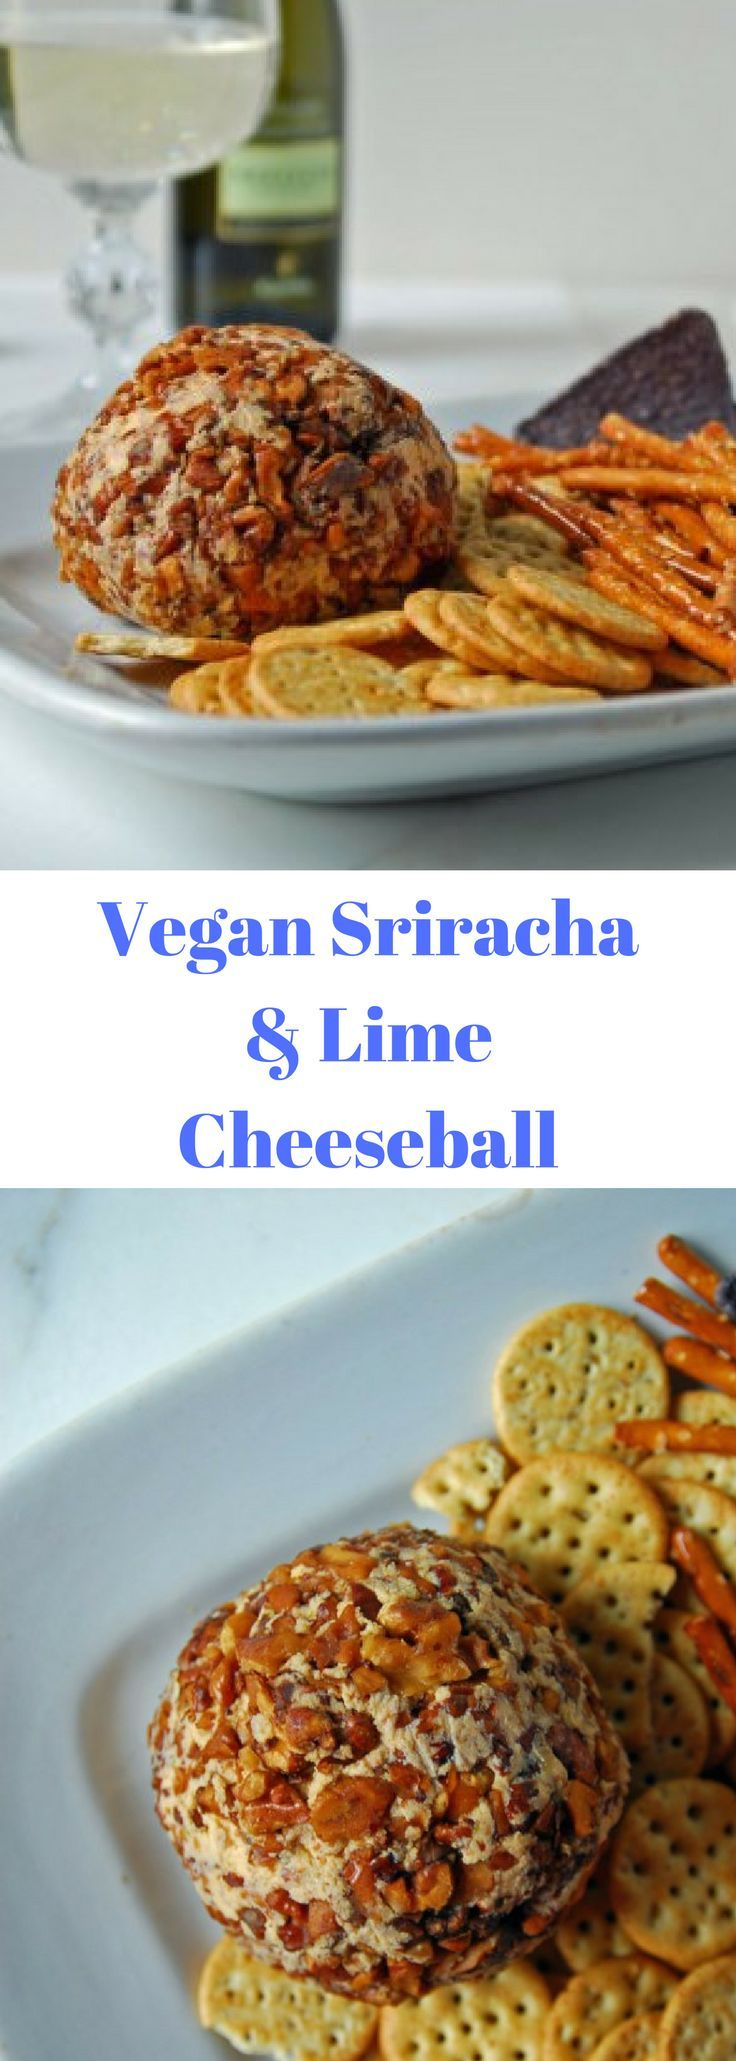 Cheeseballs usually conjure up images of Chiristmas parties and office potlucks, but I found that this one just reminded me that vegan cheese can be a.) really delicious and b.) super easy, the perfect combination